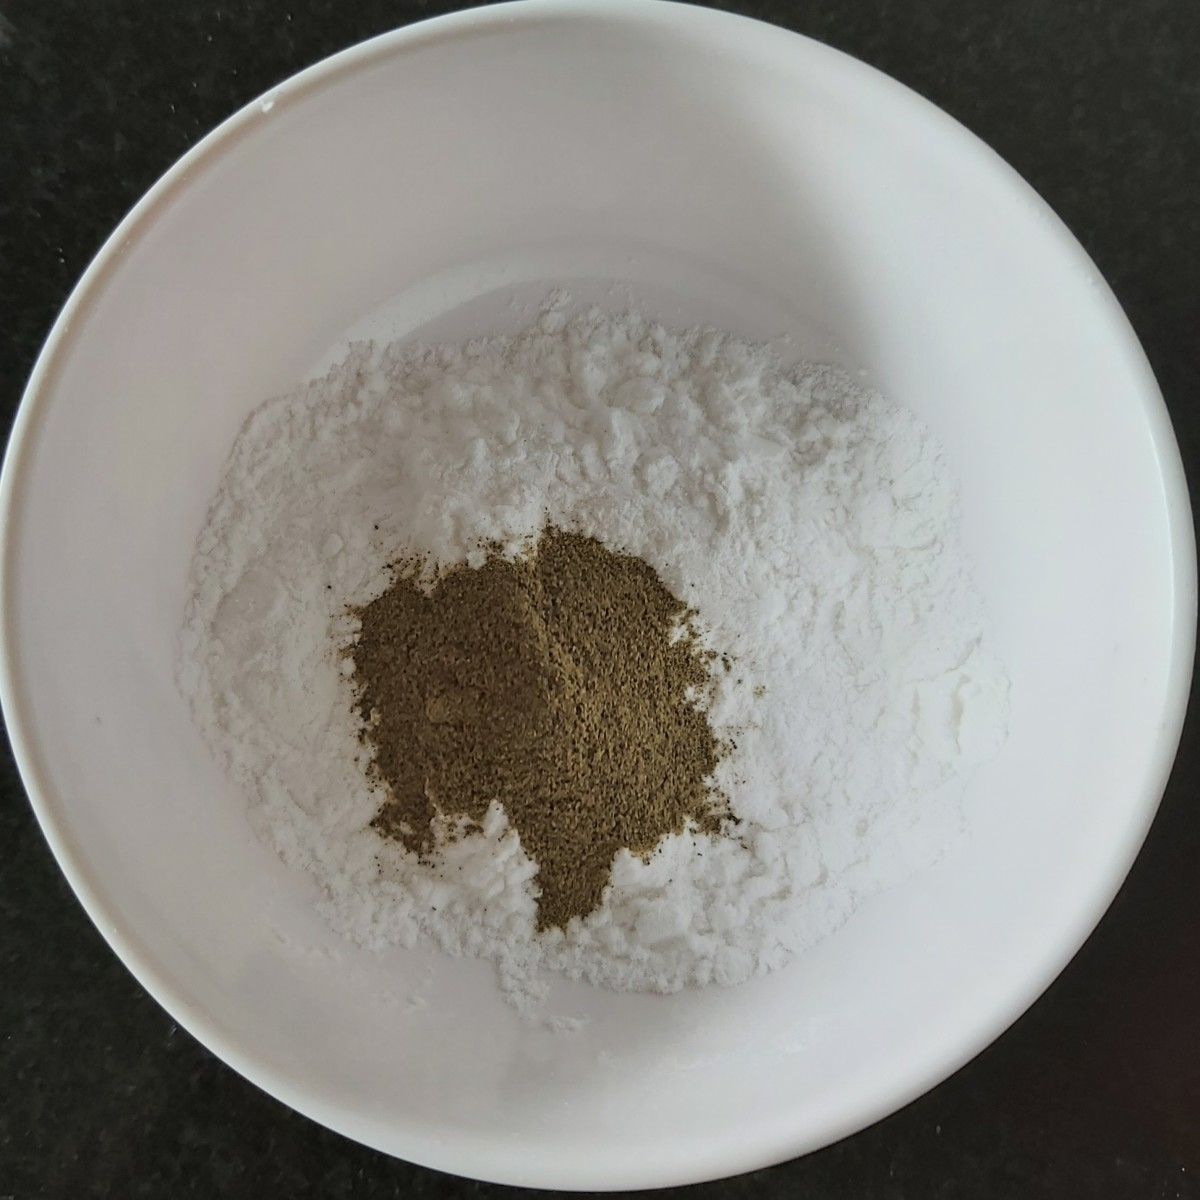 Meanwhile, in a bowl, take 2 tablespoons of corn flour and 1 teaspoon of pepper powder (can use black or white pepper powder).